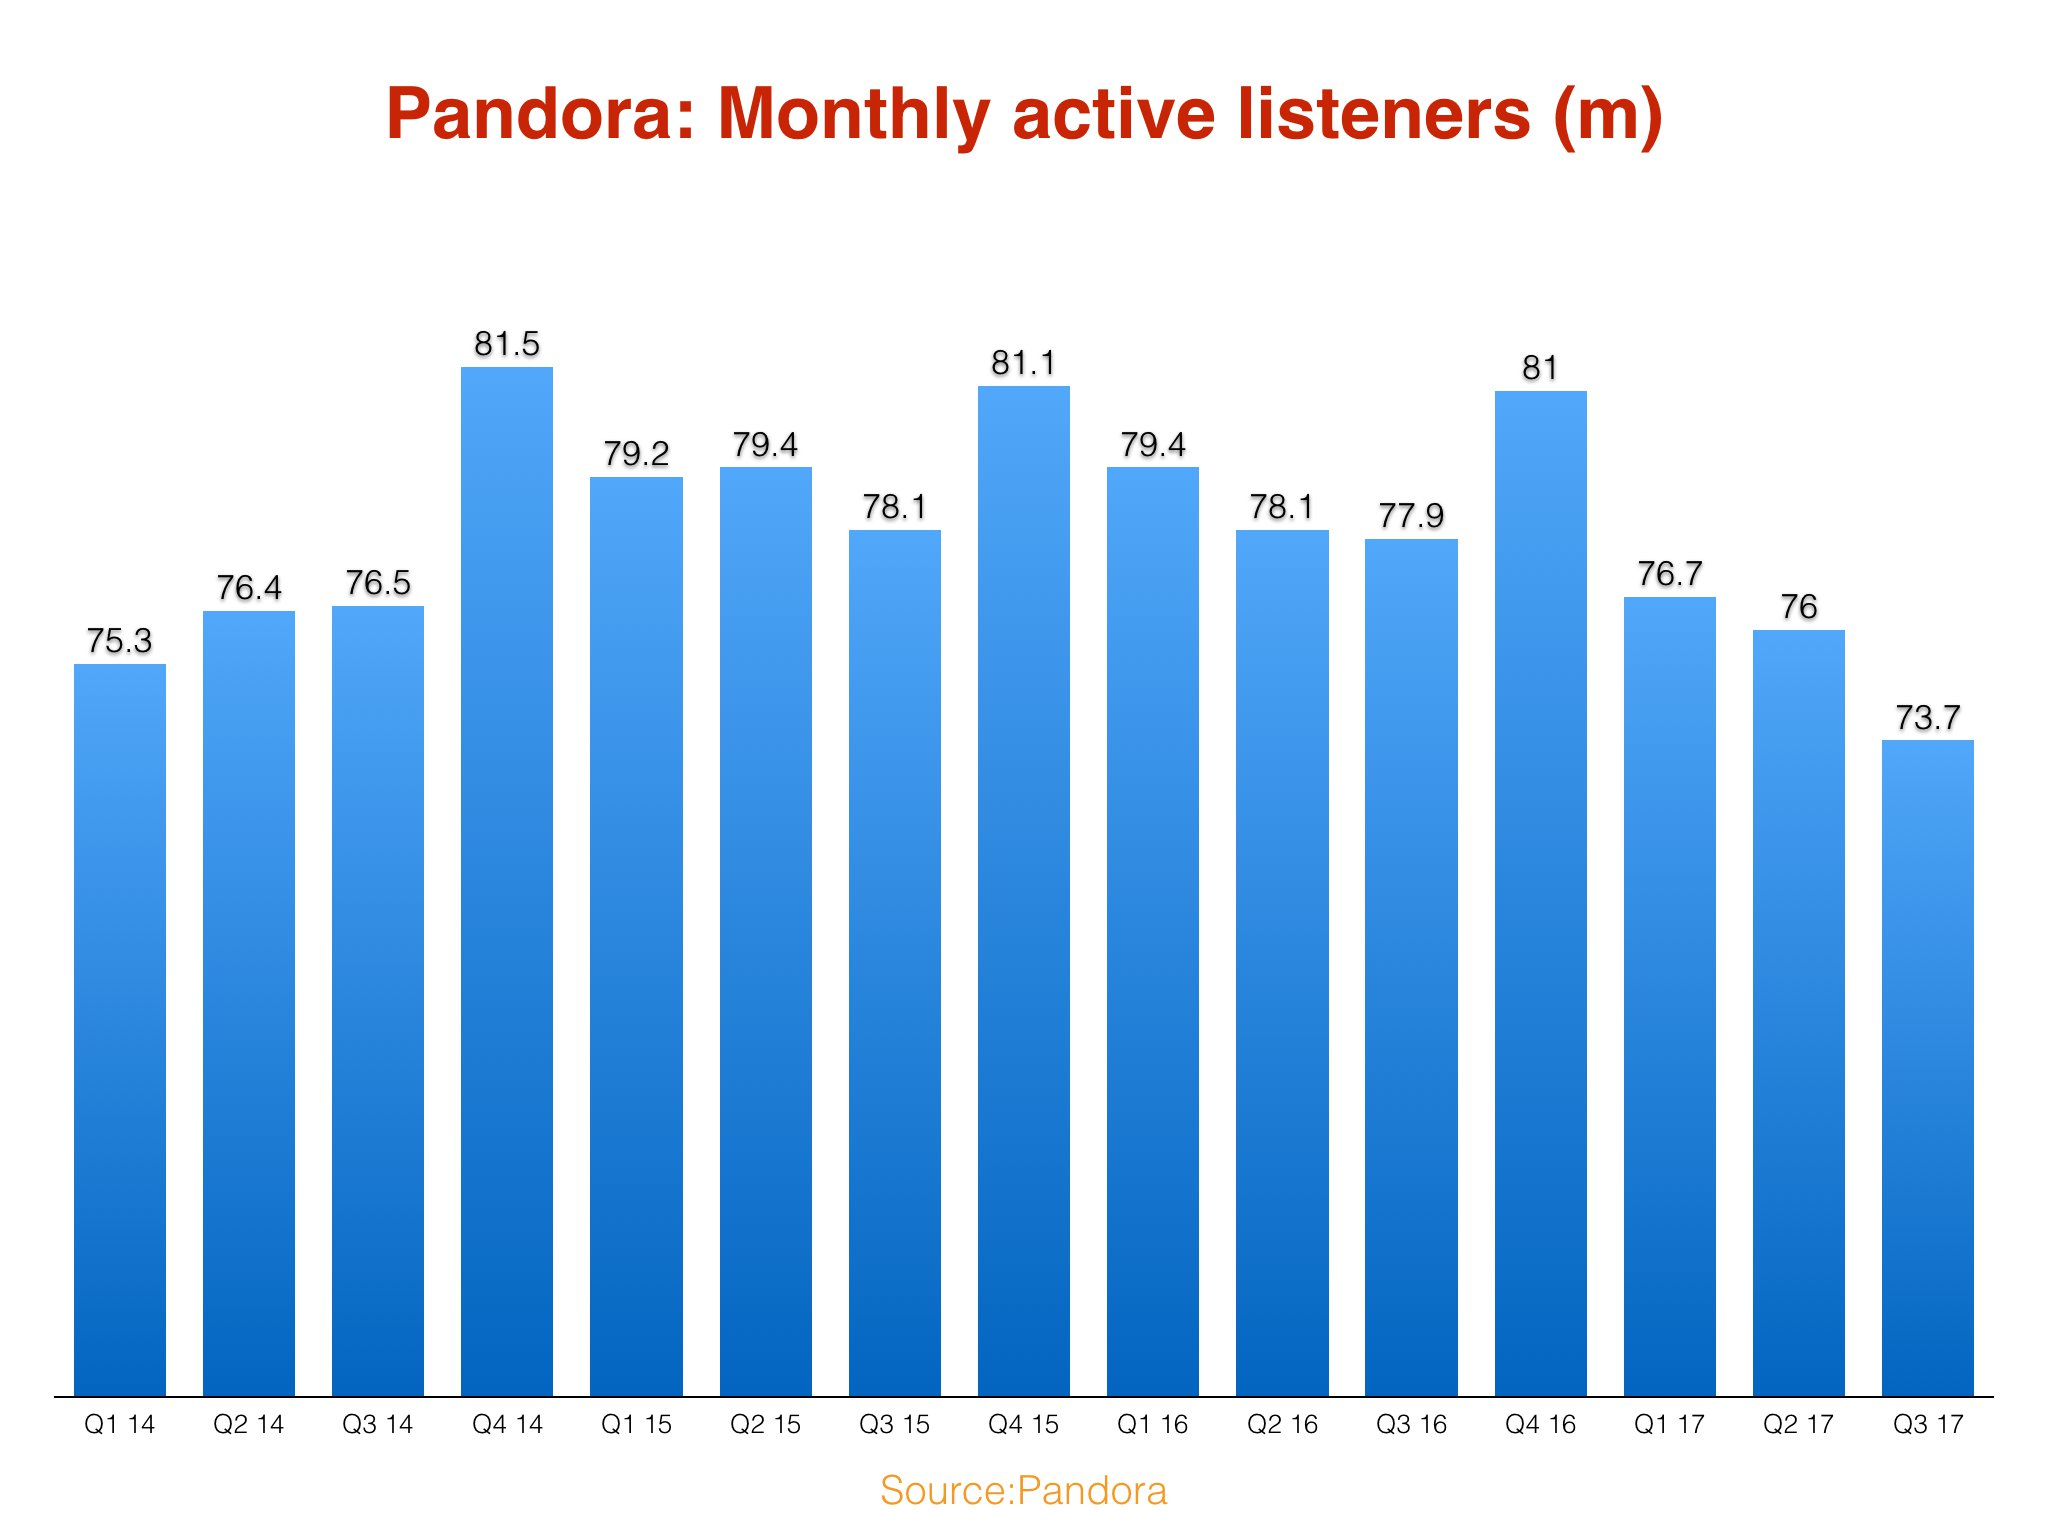 Pandora axes more staff, restructures in bid to cut costs